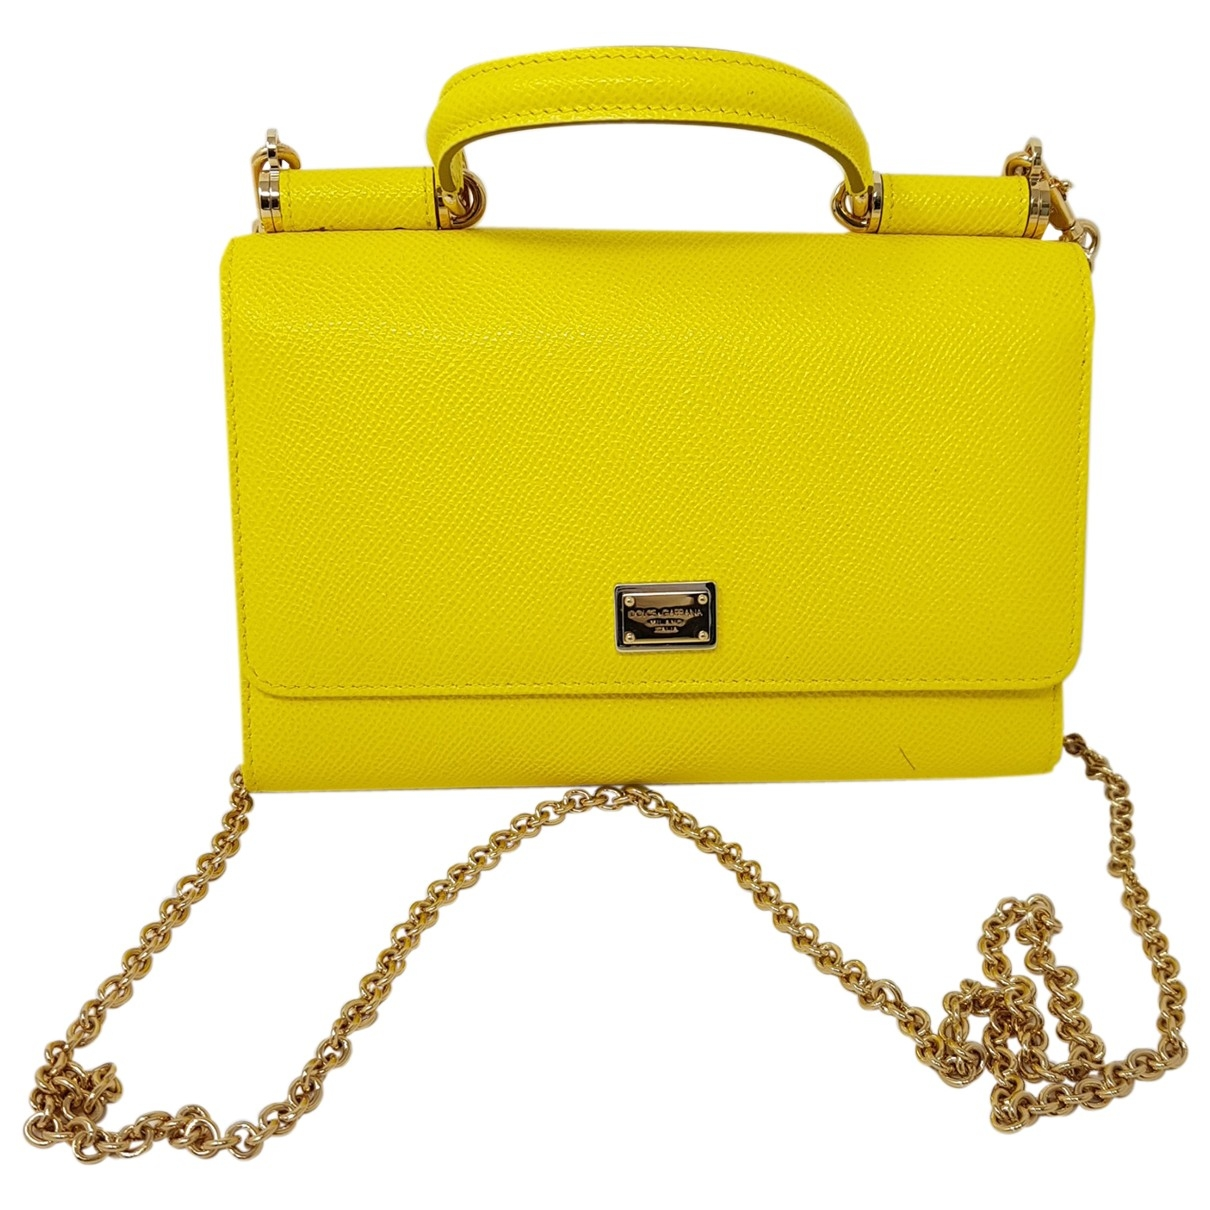 Dolce & Gabbana \N Yellow Leather wallet for Women \N